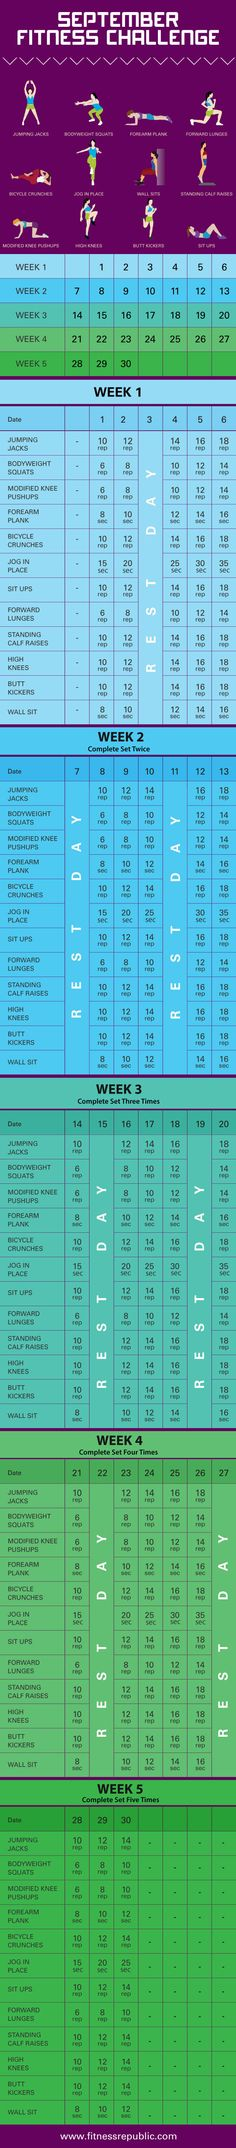 September Fitness Challenge | Fitness Republic